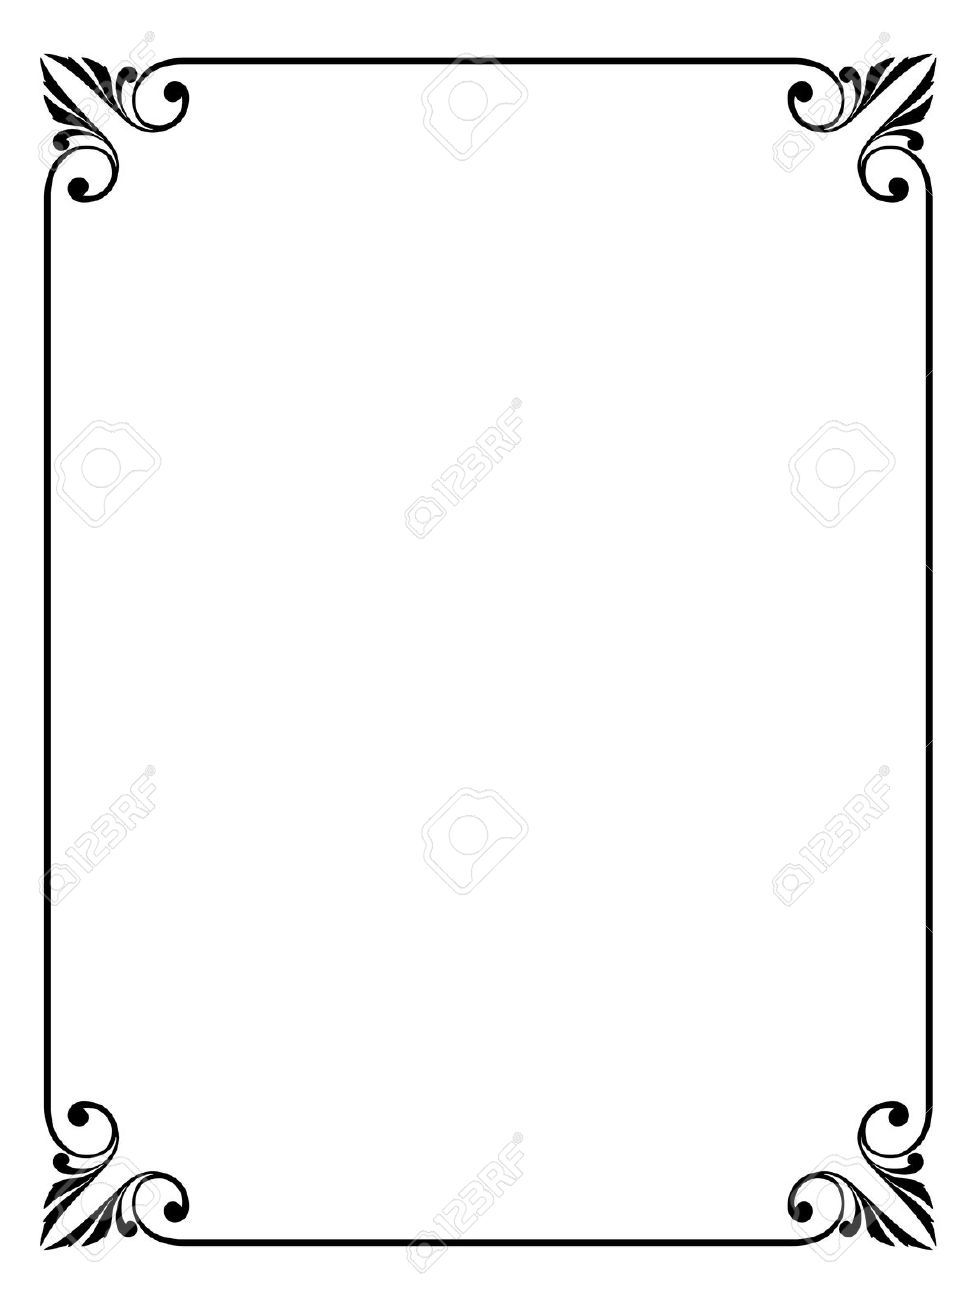 simple victorian border google search bath pinterest rh pinterest com Policeman Clip Art Drawing Rosa Parks Black and White Drawings